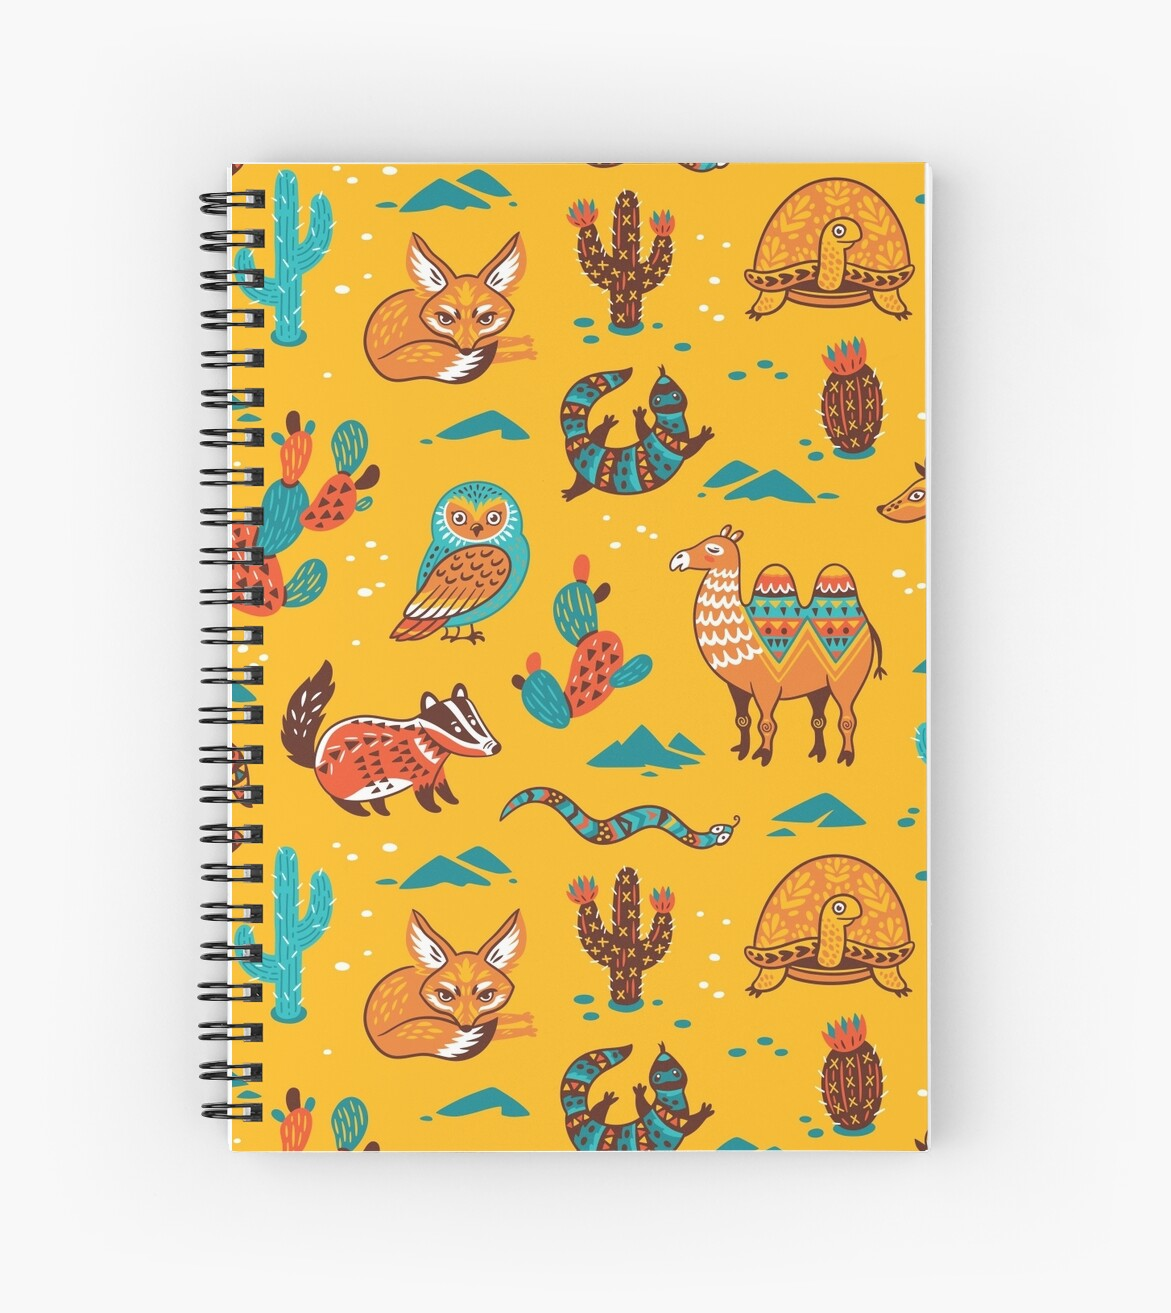 Desert animals by PenguinHouse